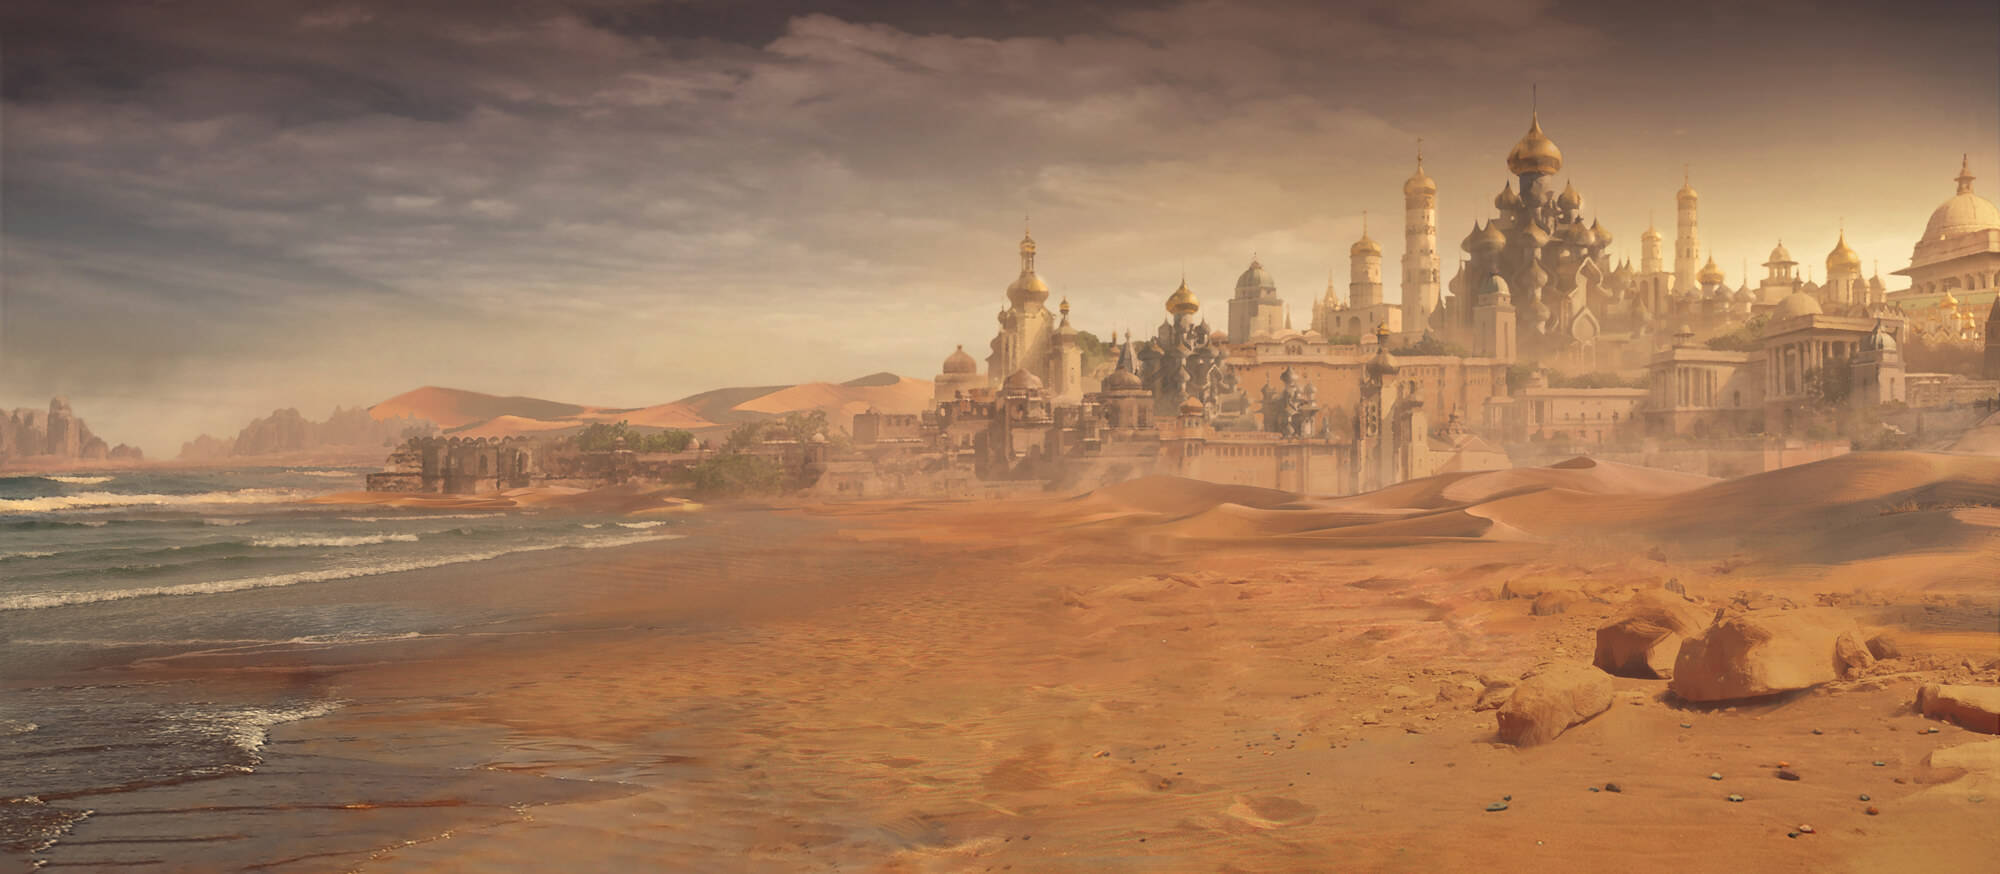 Kynazarr background slides into view behind the king. Middle-eastern fantasy city in a desert at the edge of the sea.